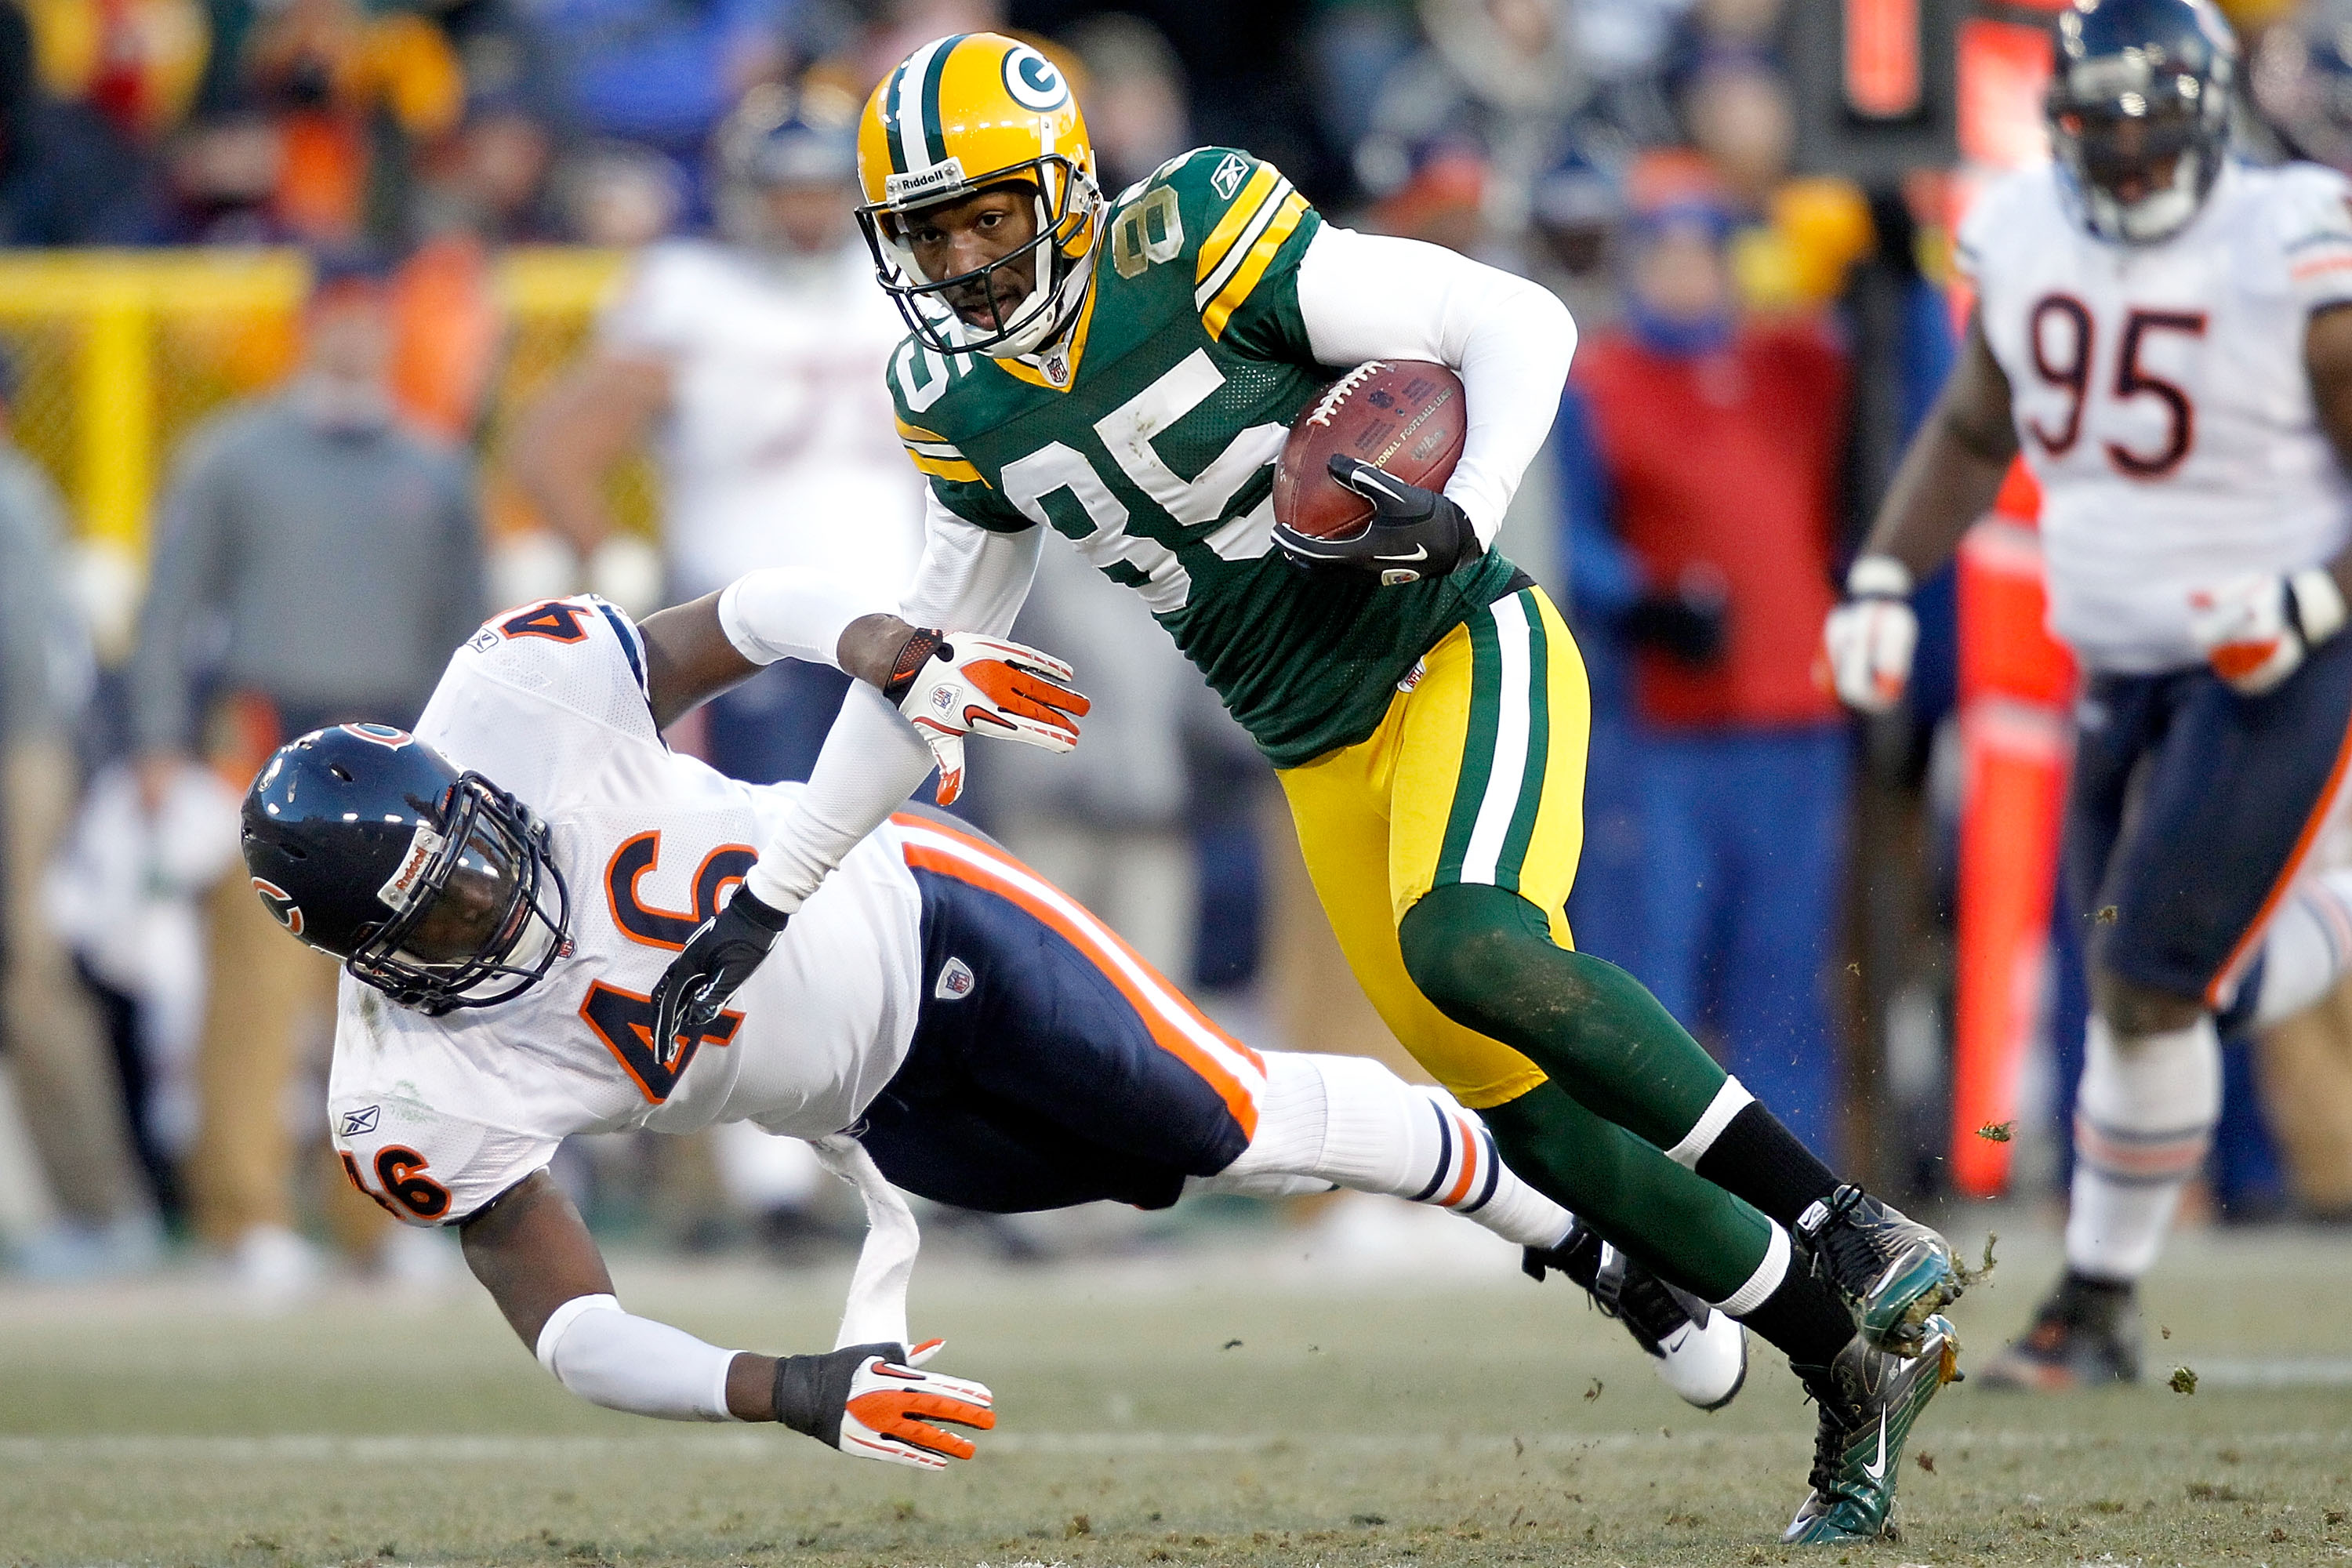 GREEN BAY, WI - JANUARY 02: Greg Jennings #85 of the Green Bay Packers carries the ball after making a reception against the Chicago Bears at Lambeau Field on January 2, 2011 in Green Bay, Wisconsin.  (Photo by Matthew Stockman/Getty Images)